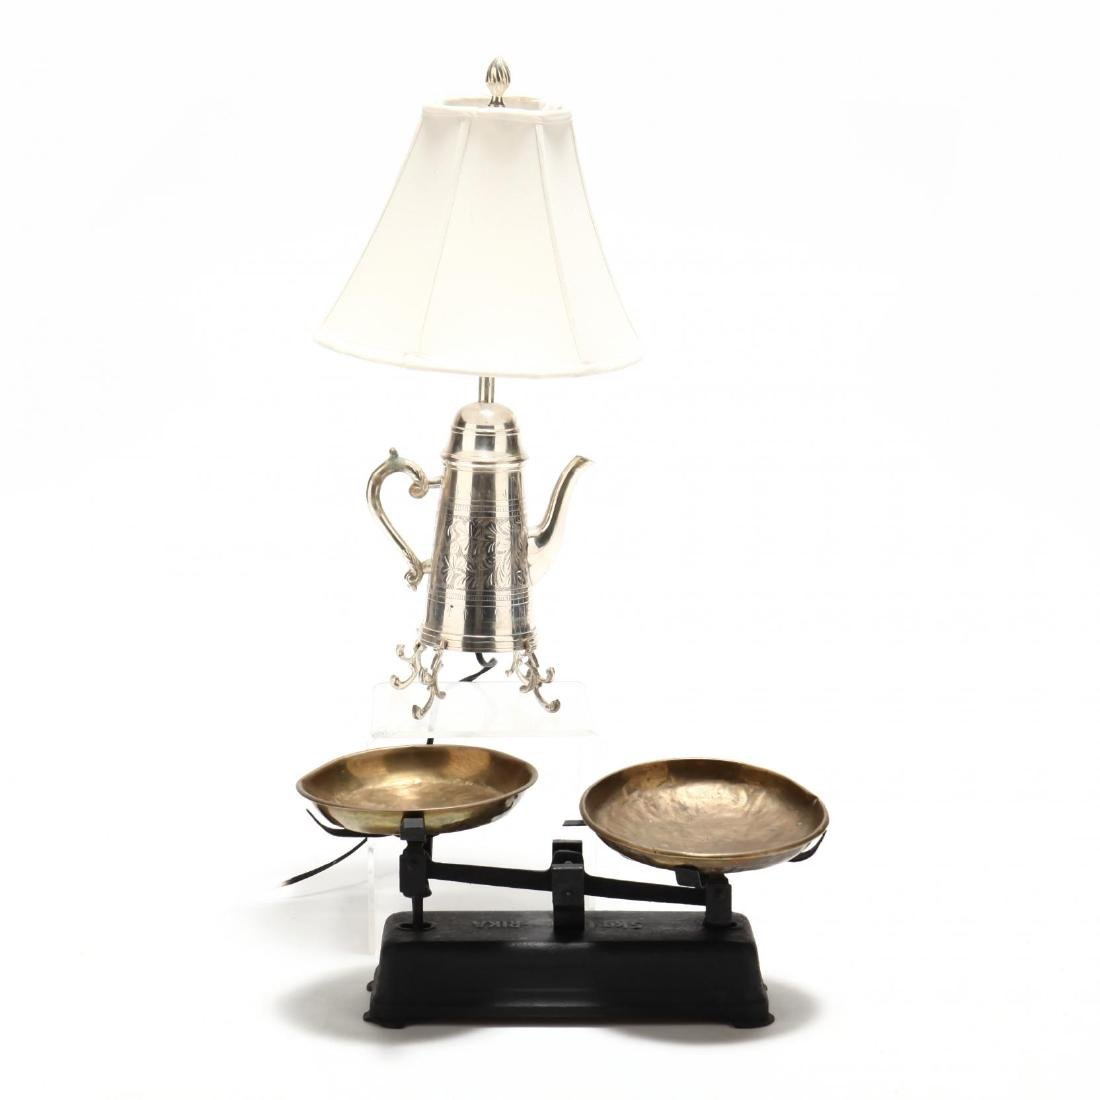 Decorative Counter Top Scales and Tea Pot Lamp